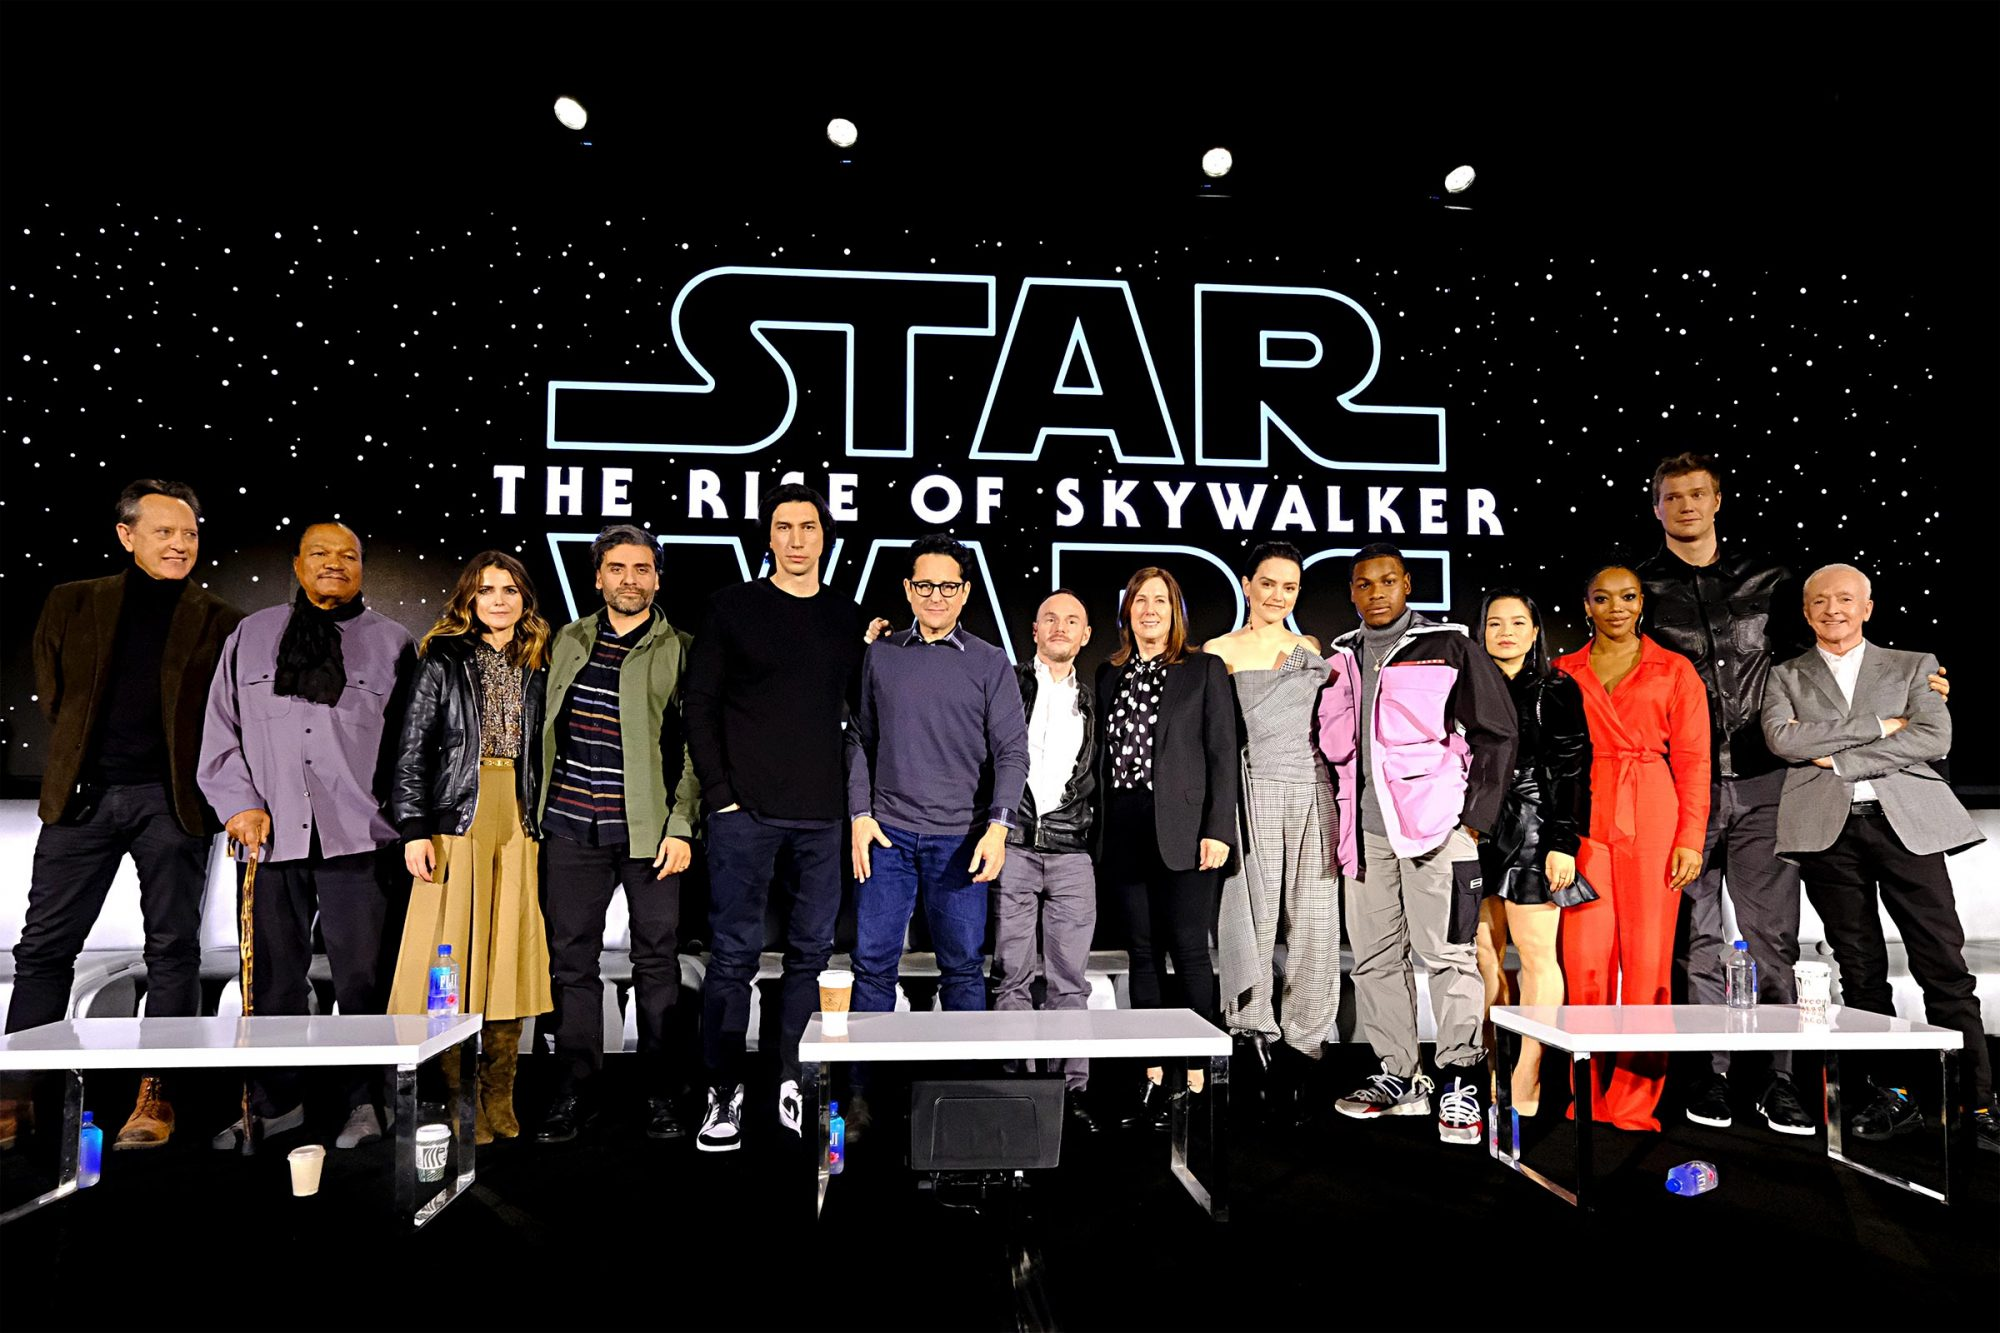 """Richard E. Grant, Billy Dee Williams, Keri Russell, Oscar Isaac, Adam Driver, Writer/director J.J. Abrams, Co-writer Chris Terrio, Producer and President of Lucasfilm Kathleen Kennedy, Daisy Ridley, John Boyega, Kelly Marie Tran, Naomi Ackie, Joonas Suotamo and Anthony Daniels participate in the global press conference for """"Star Wars: The Rise of Skywalker"""""""